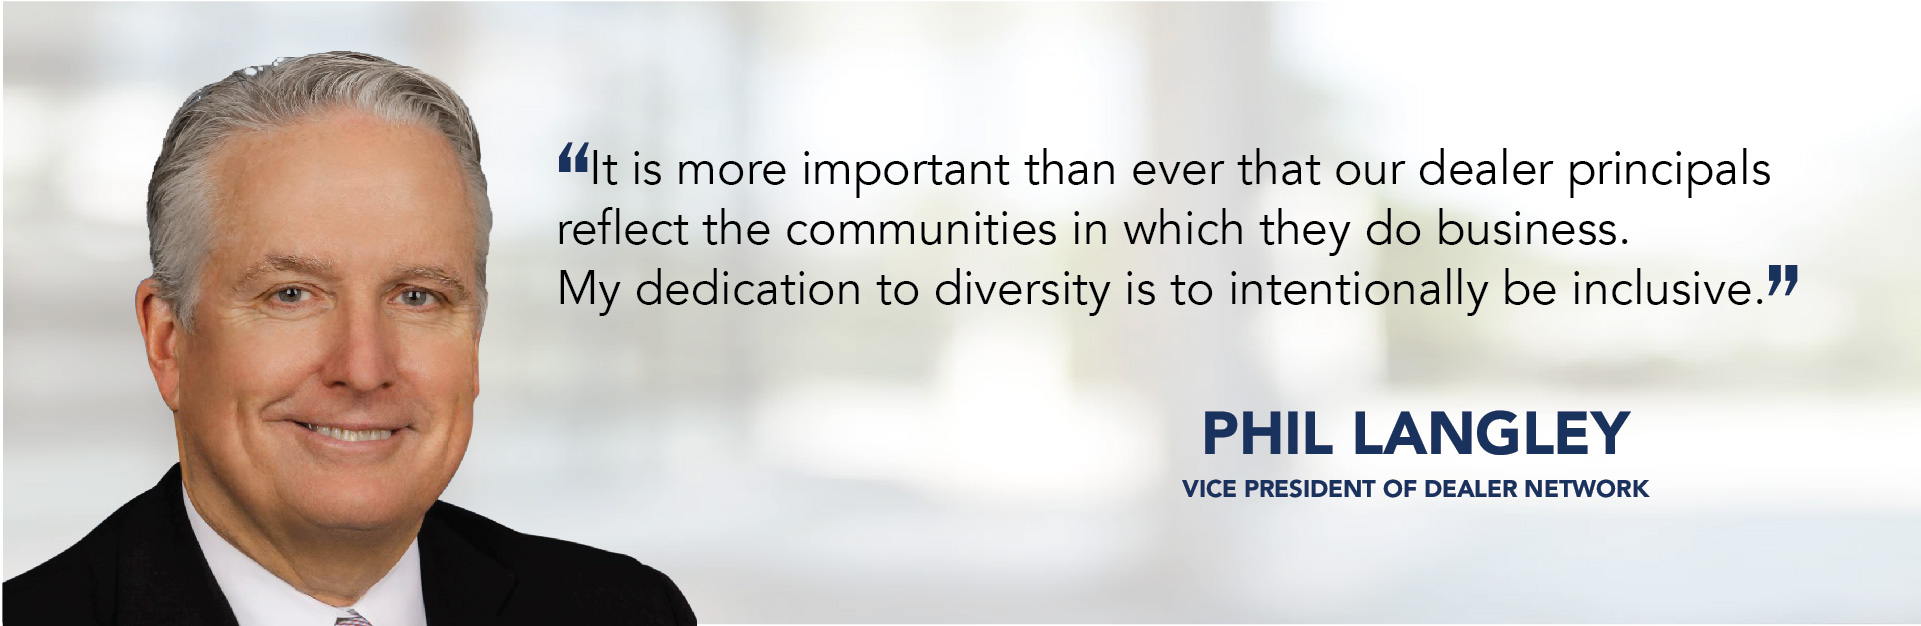 It is more important than ever that our dealer principals reflect the communities in which they do business. My dedication to diversity is to intentionally be inclusive. - Phil Langley